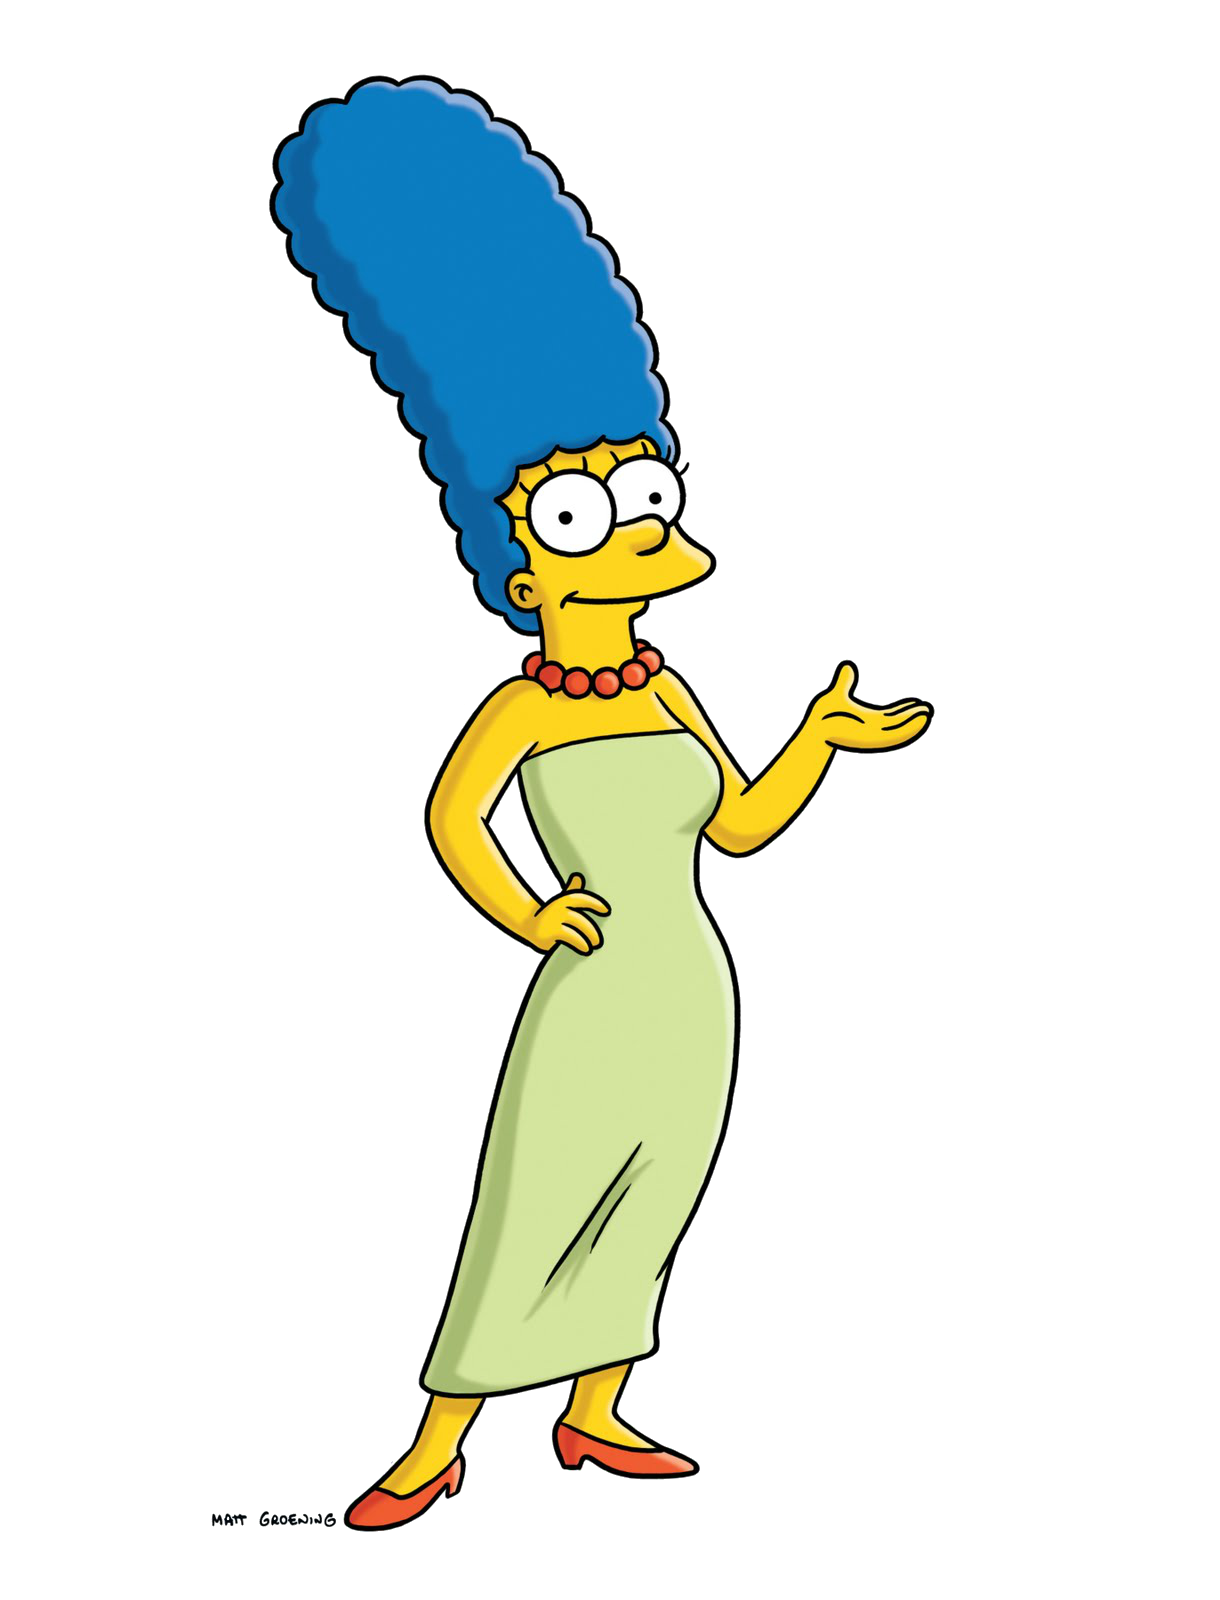 Simpsons characters png. Marge simpson pinterest cartoon